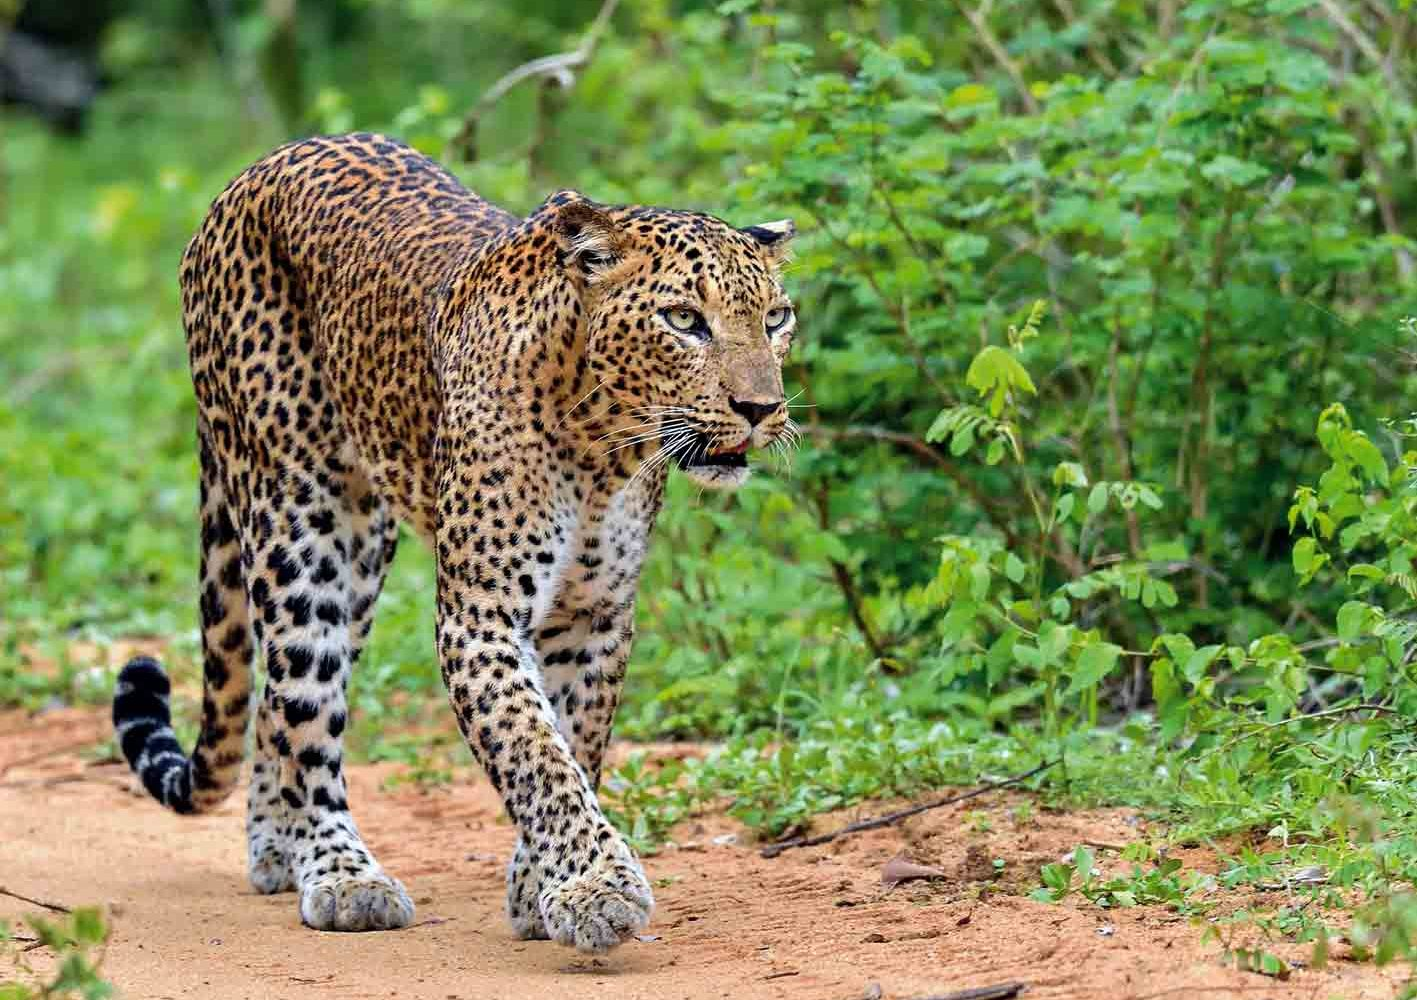 Leopard im Yala-Nationalpark, Sri Lanka